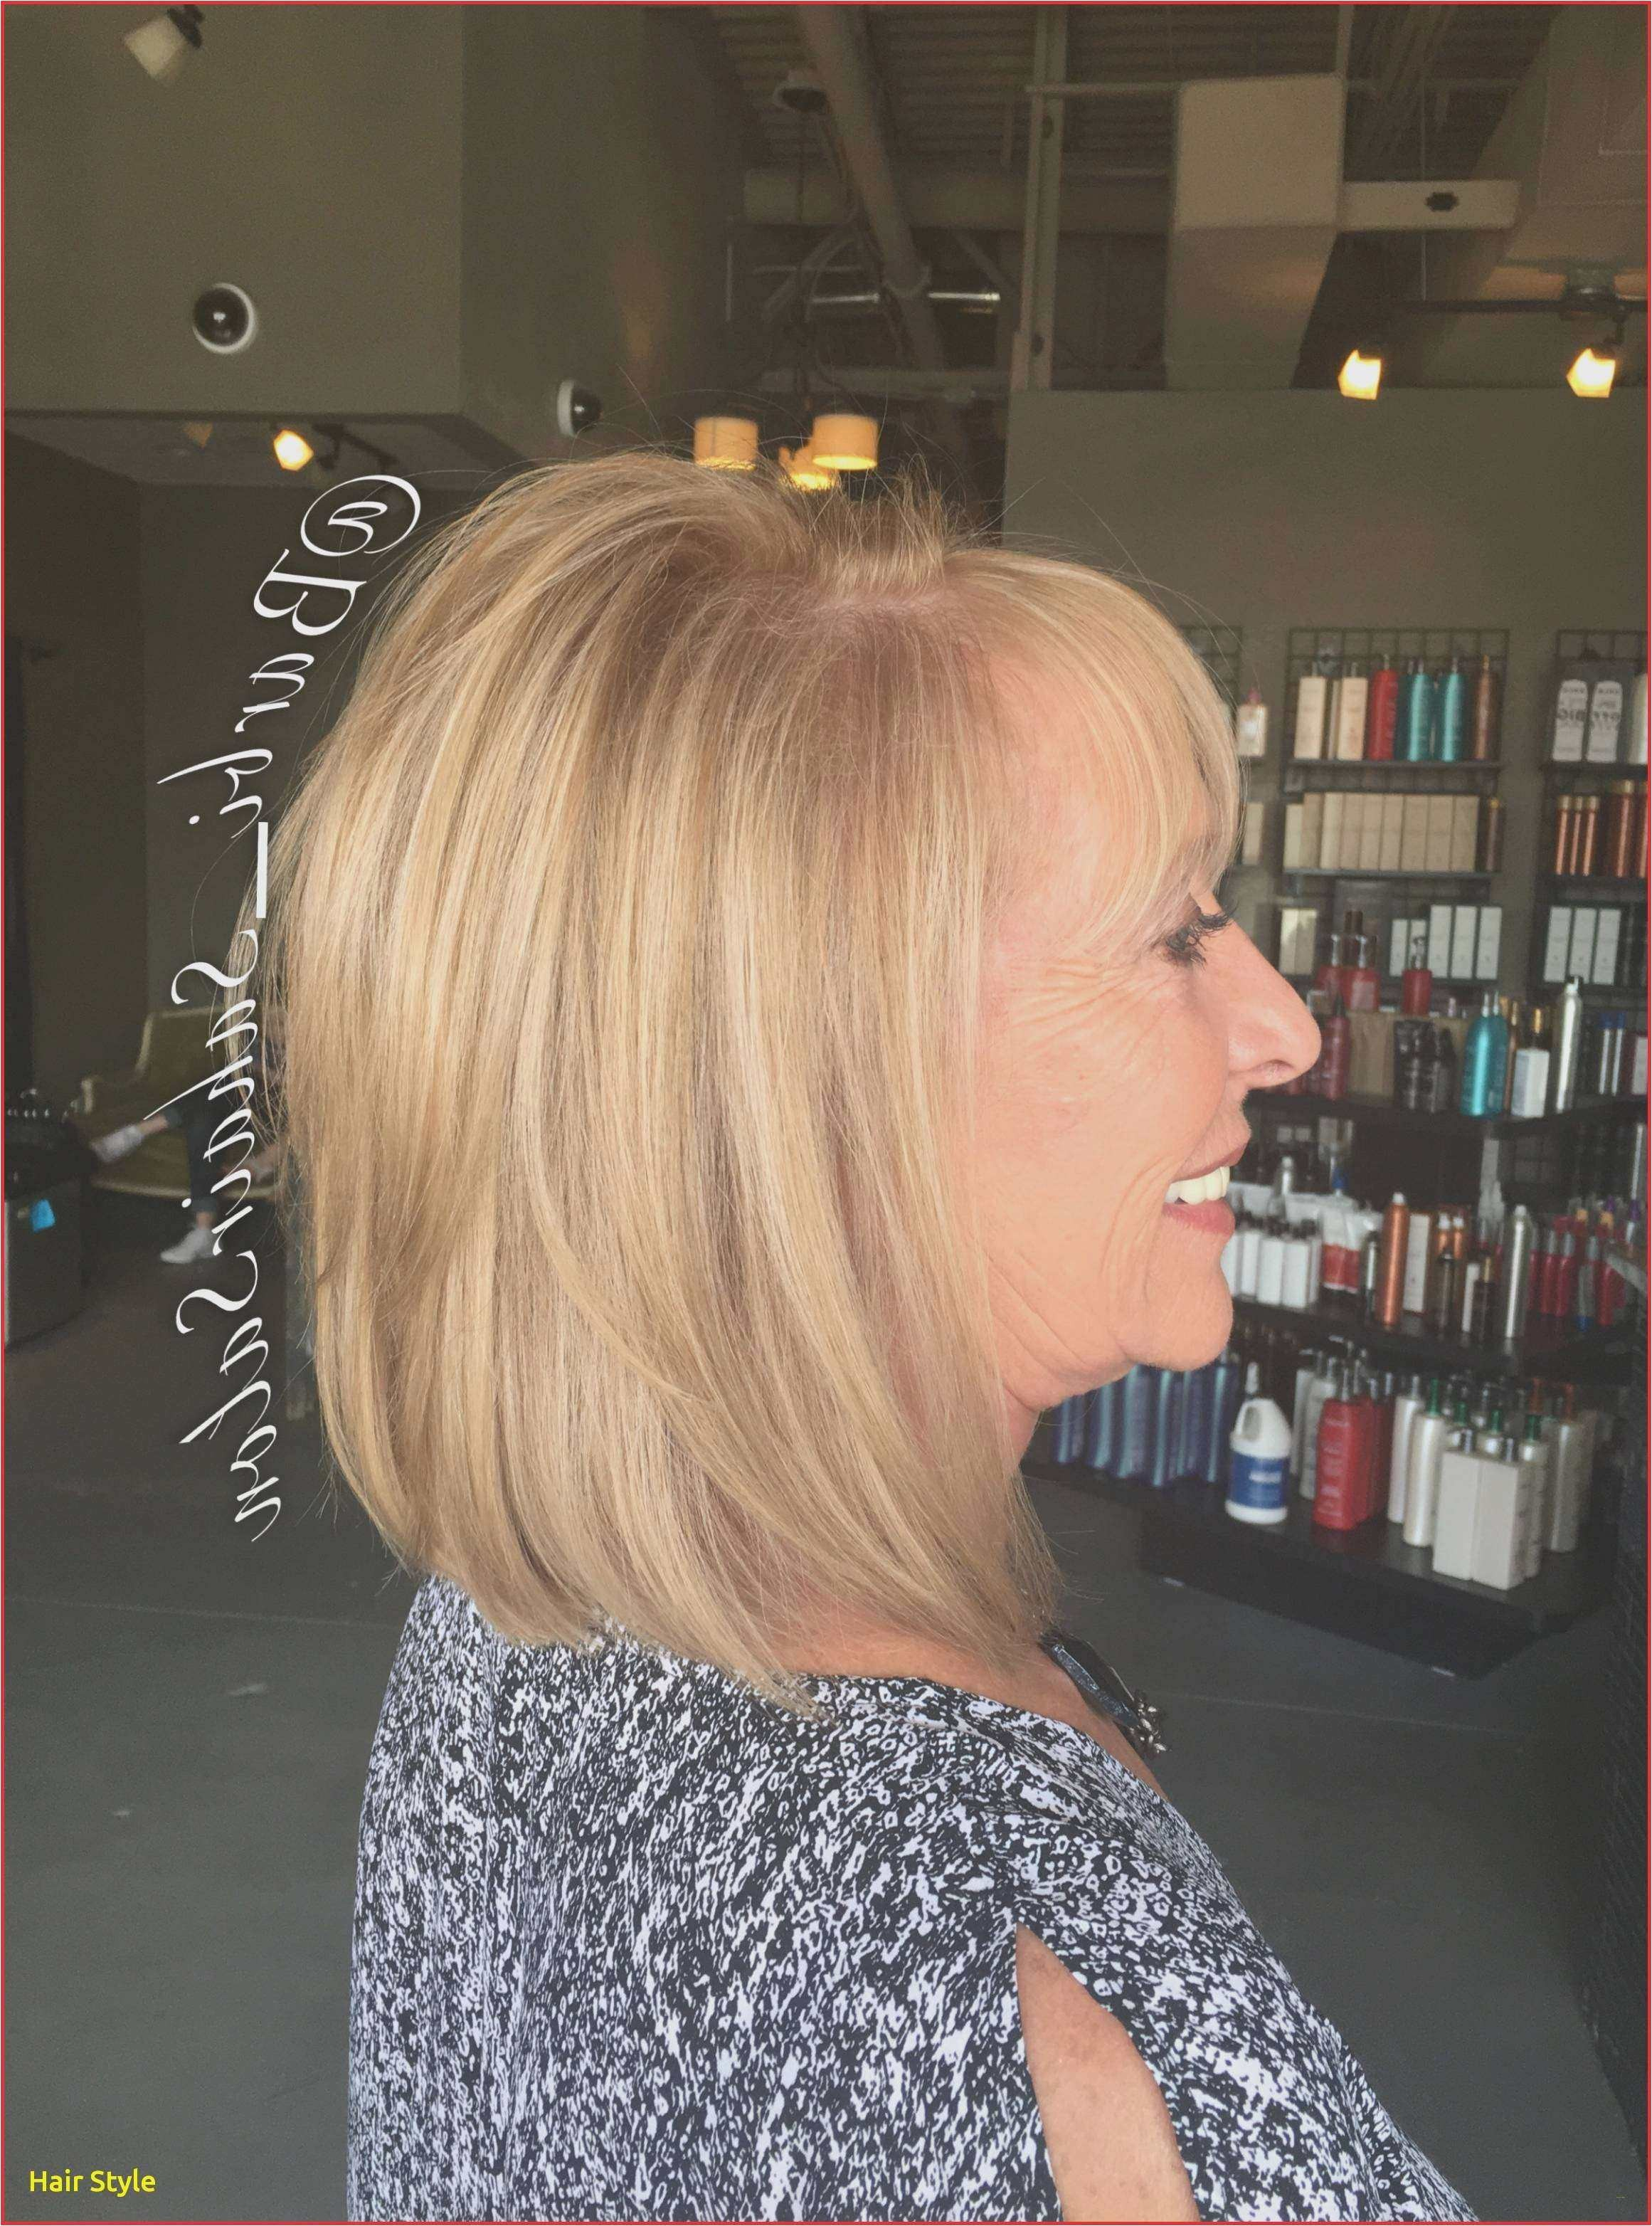 Older Women Hairstyles Simple Unique Long Hairstyles for 60 Year Old Woman Fresh